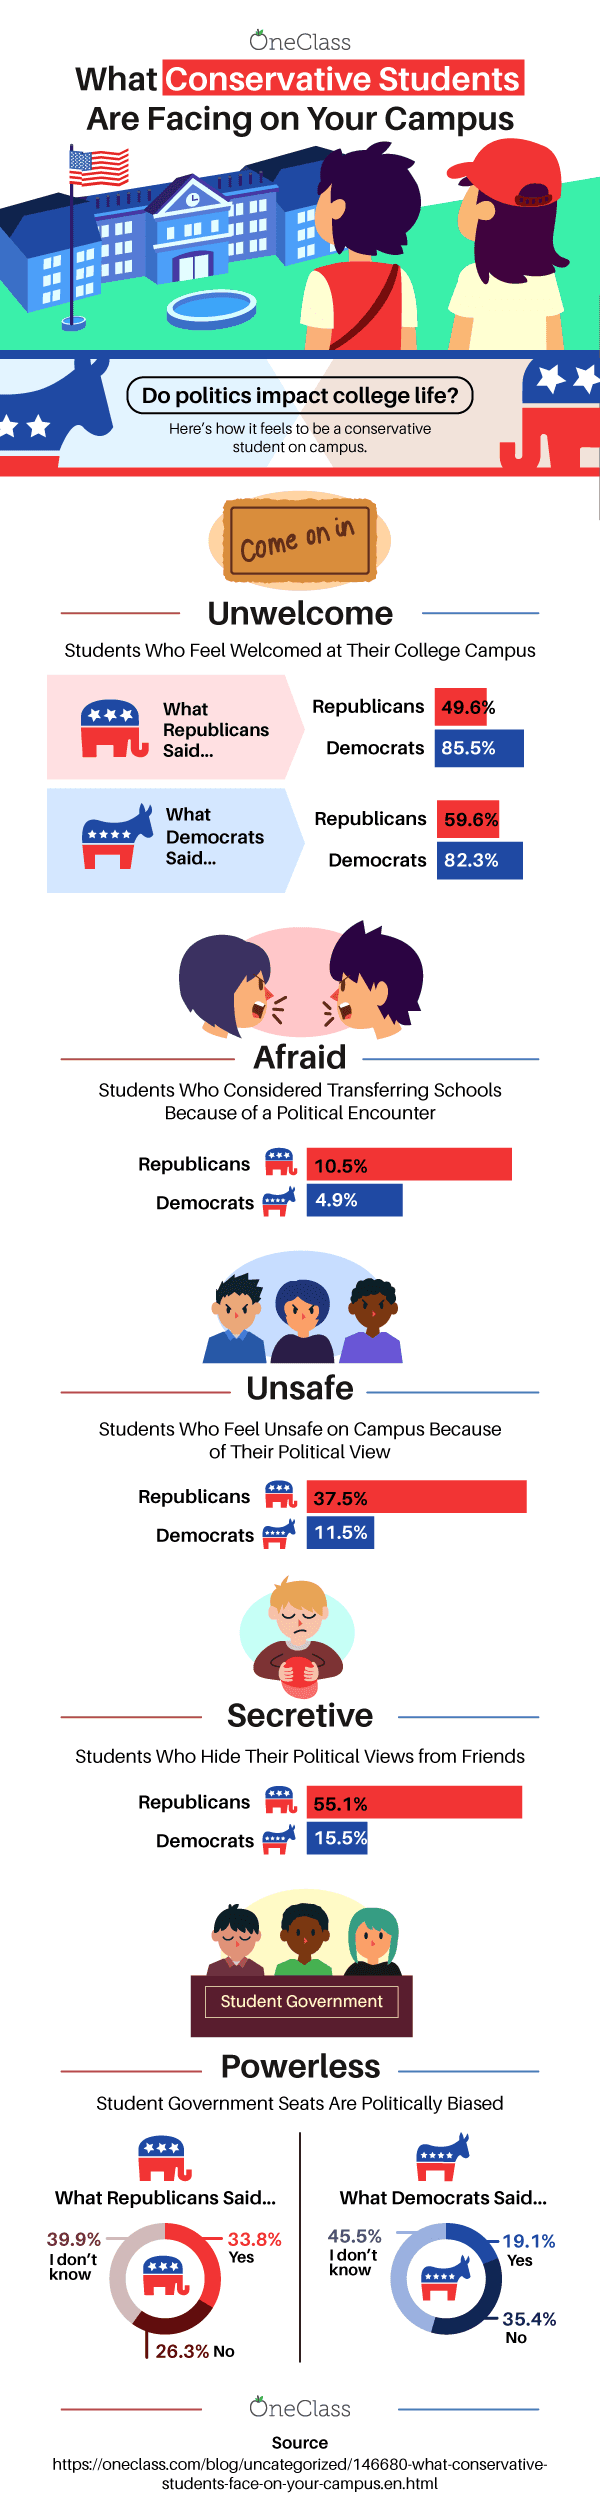 What Conservative Students Face on Campus